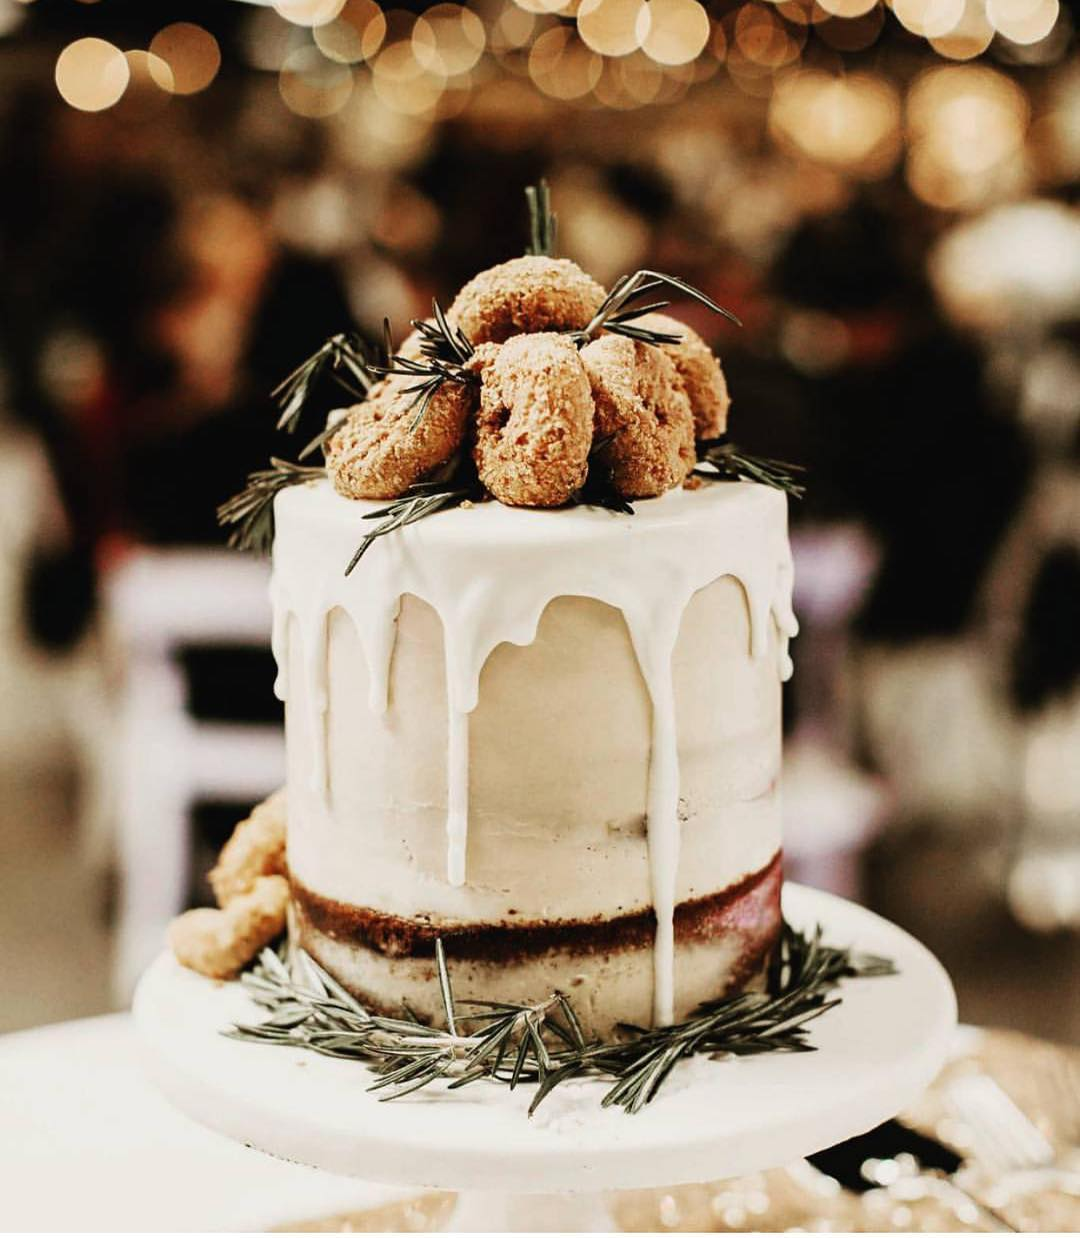 Winter Wedding Cake with Donuts